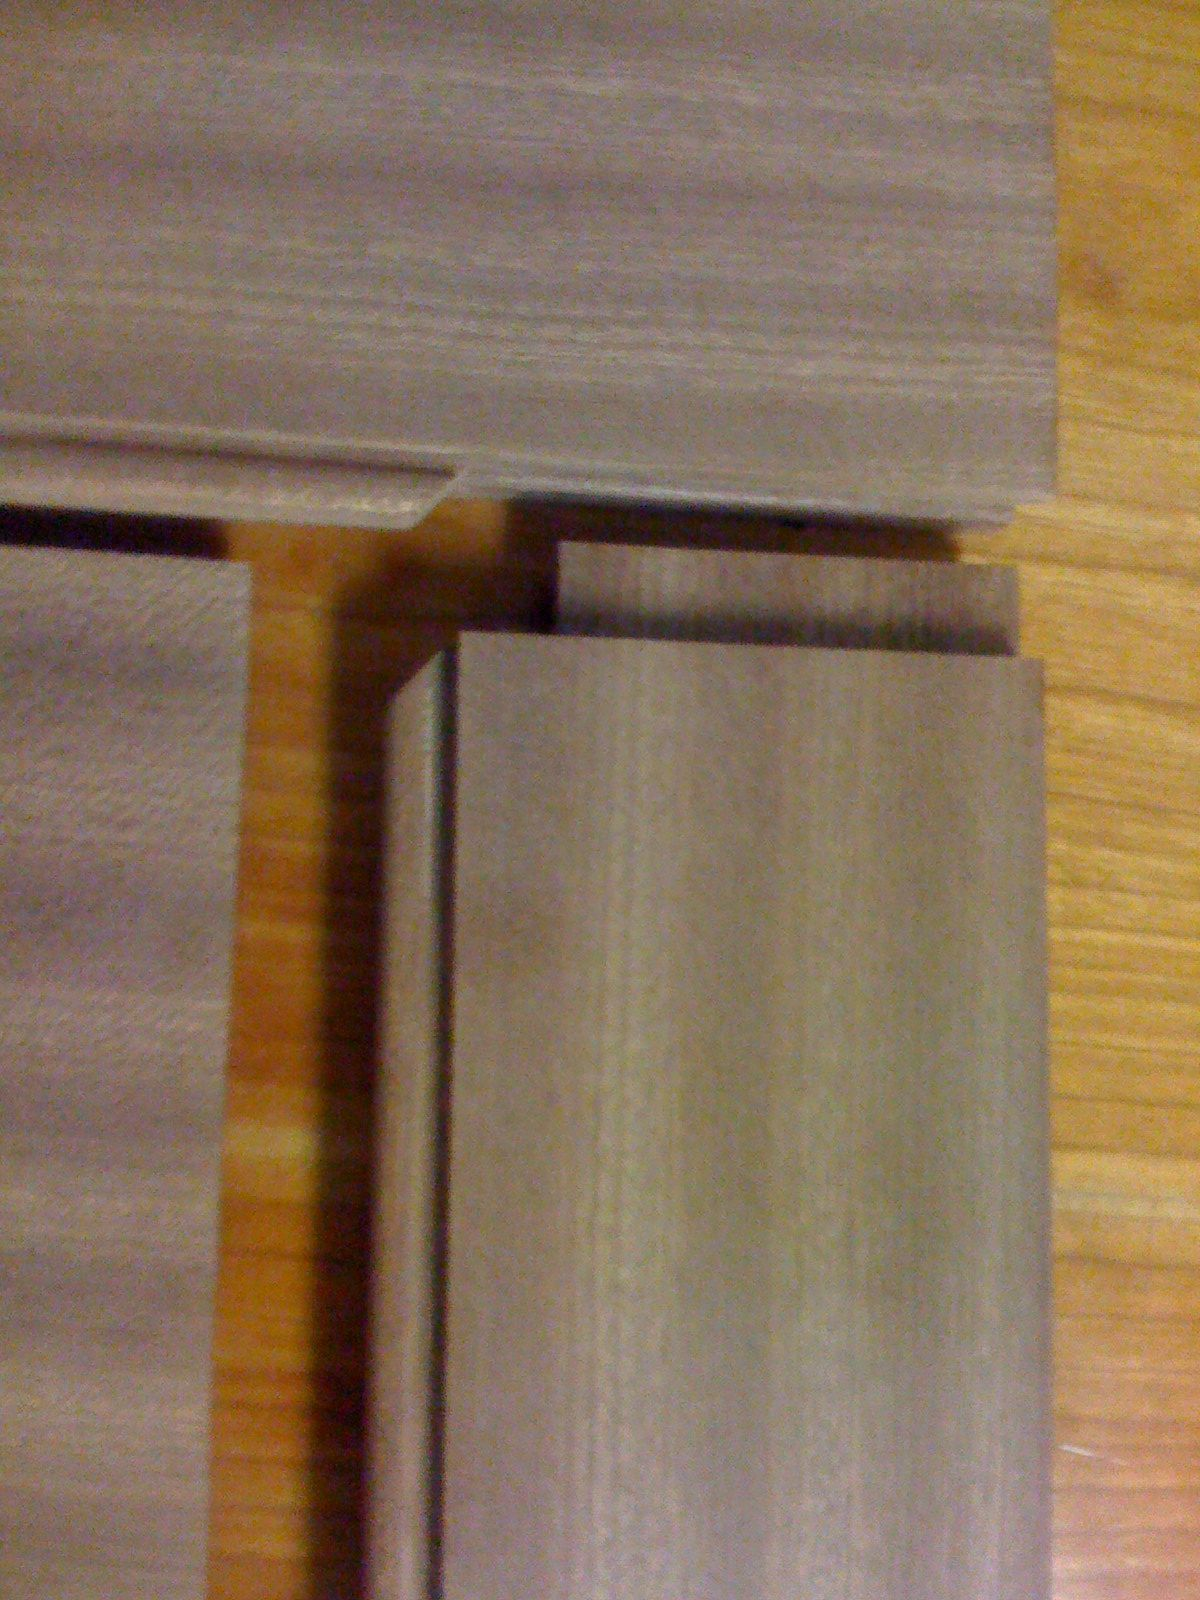 Rail and stile cabinet doors cabinet doors for Wood stile and rail doors